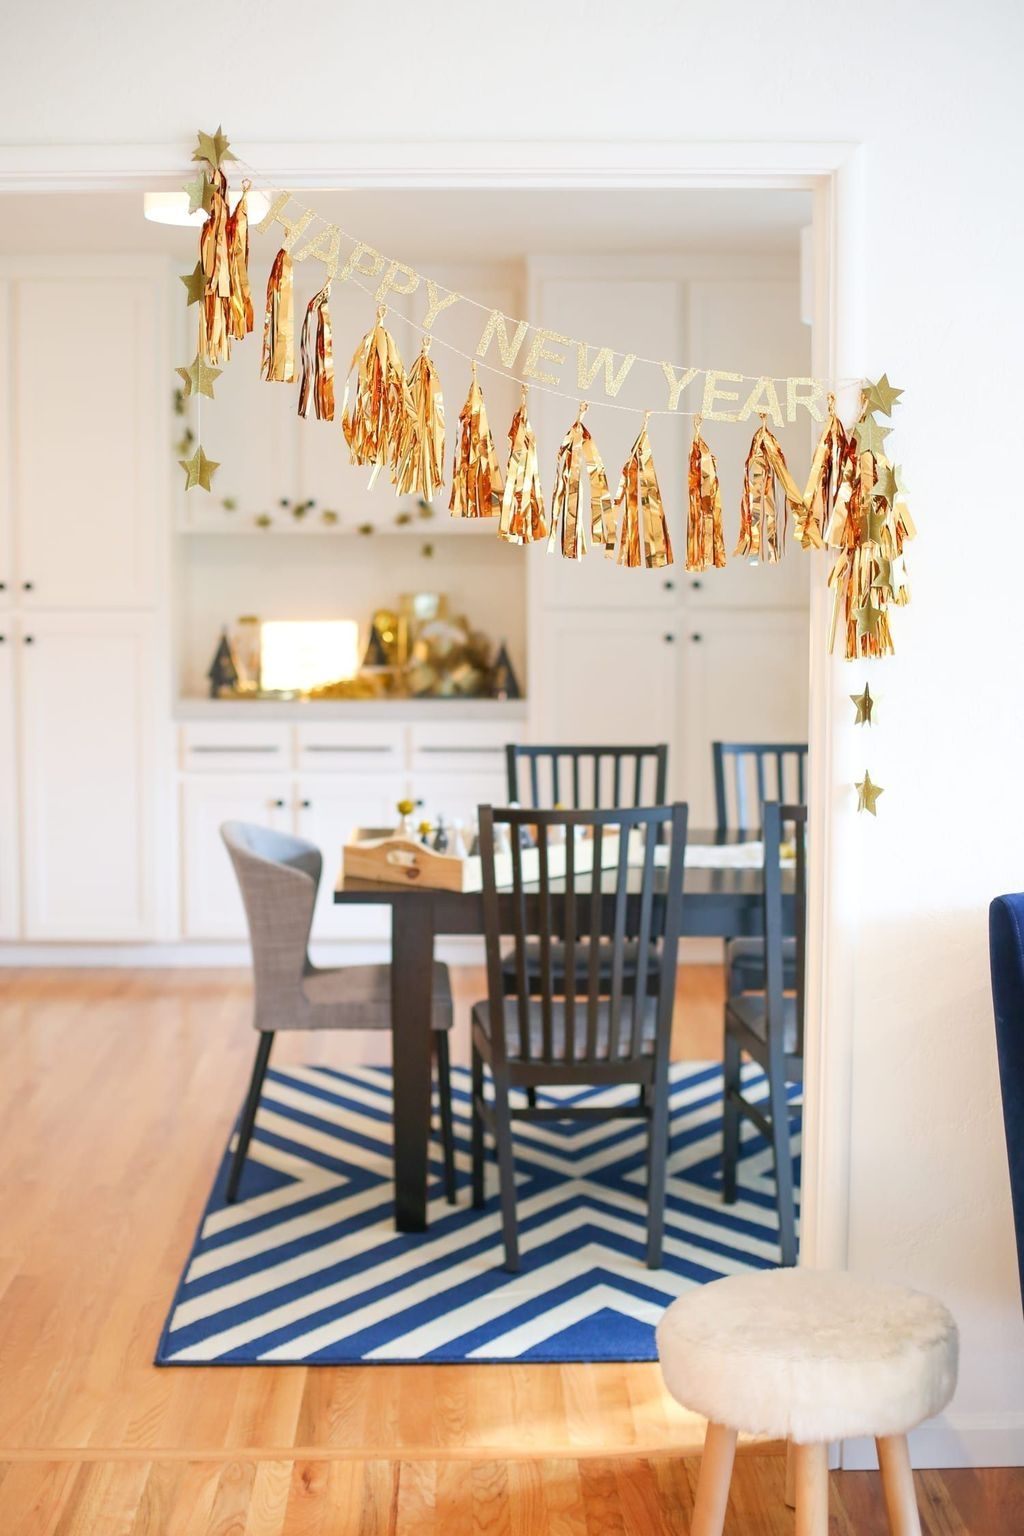 20+ Easy And Simple Decoration Ideas For A Family New ...